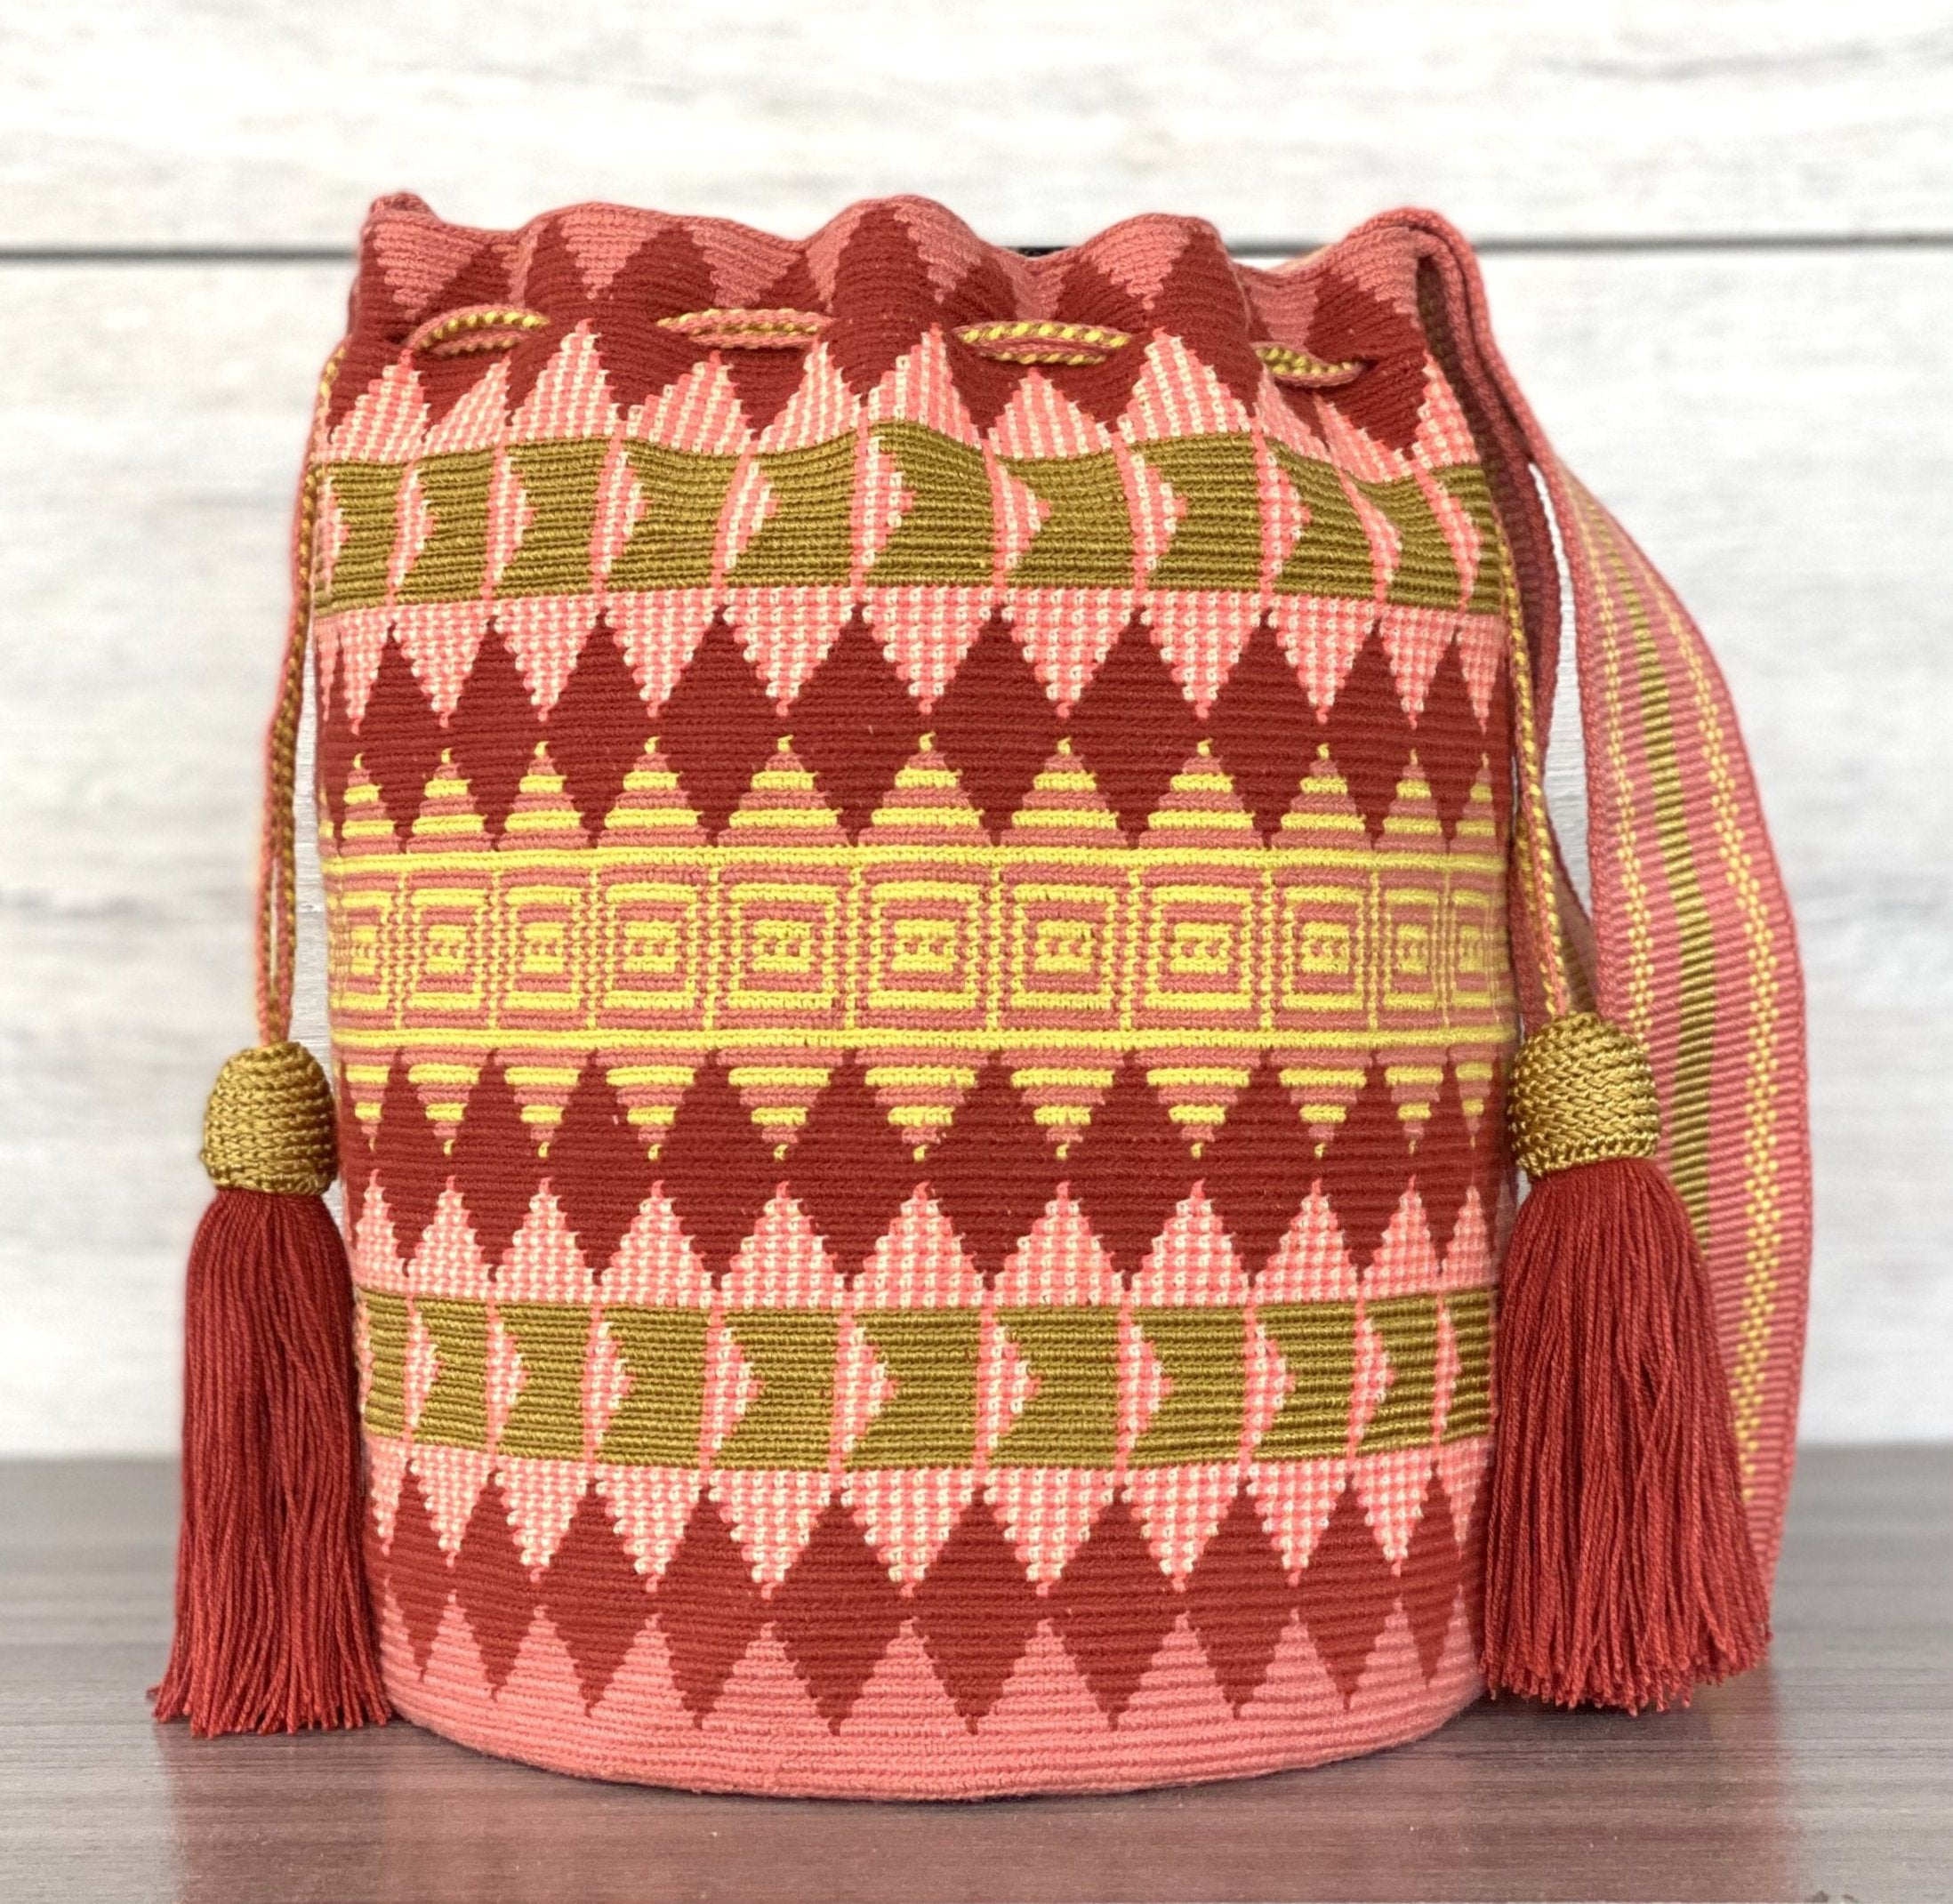 SUSU Evergreen Crossbody Mochila